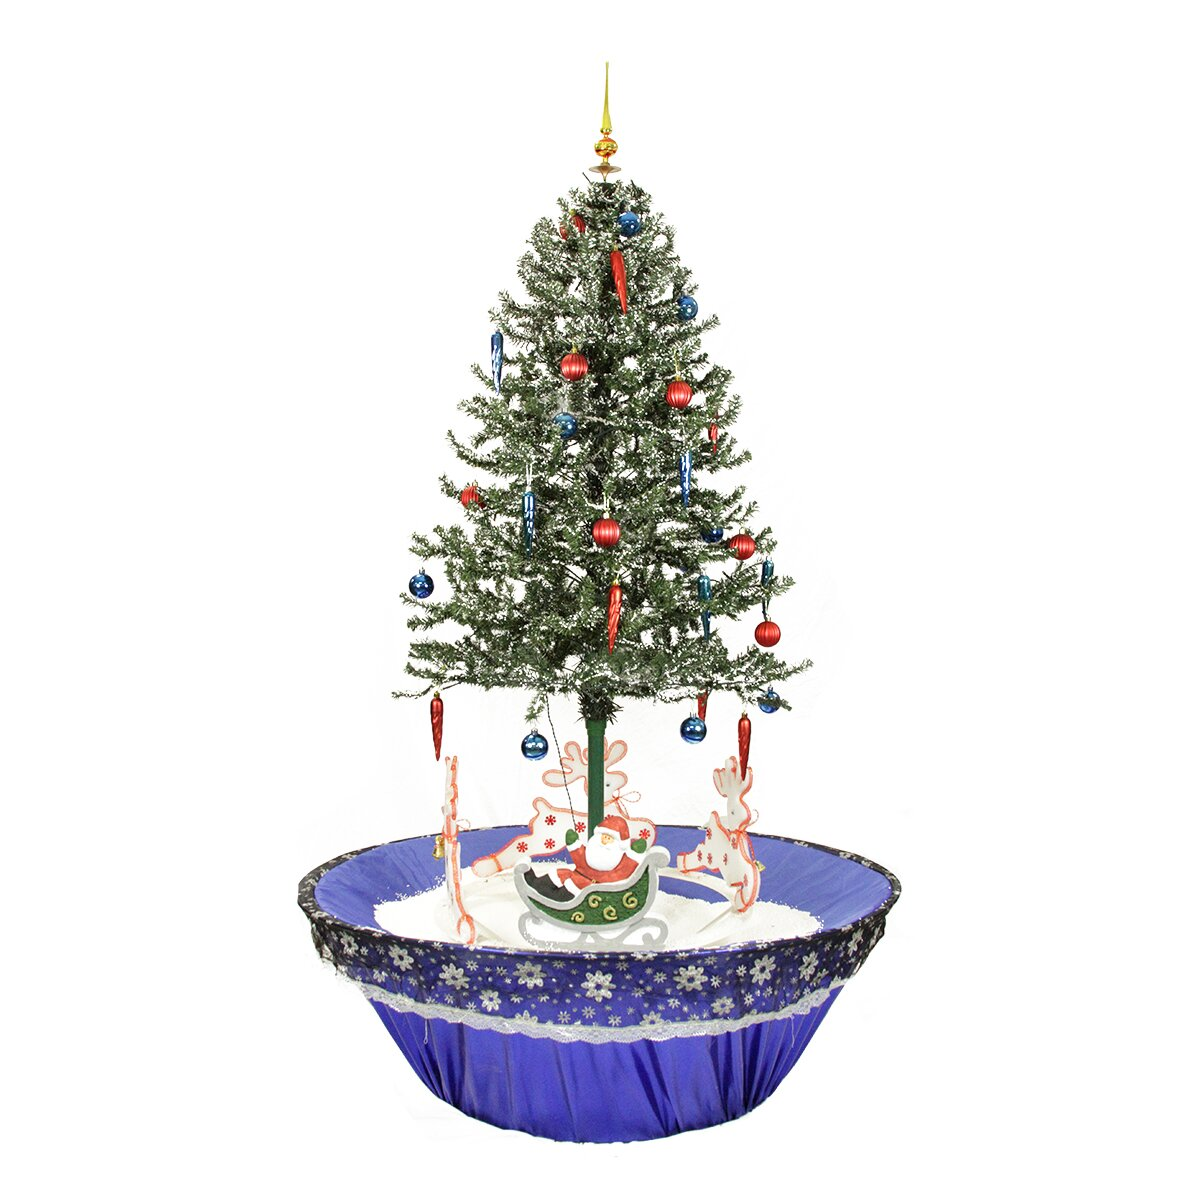 Images of Christmas Tree Lights To Music - Home Decoration Ideas